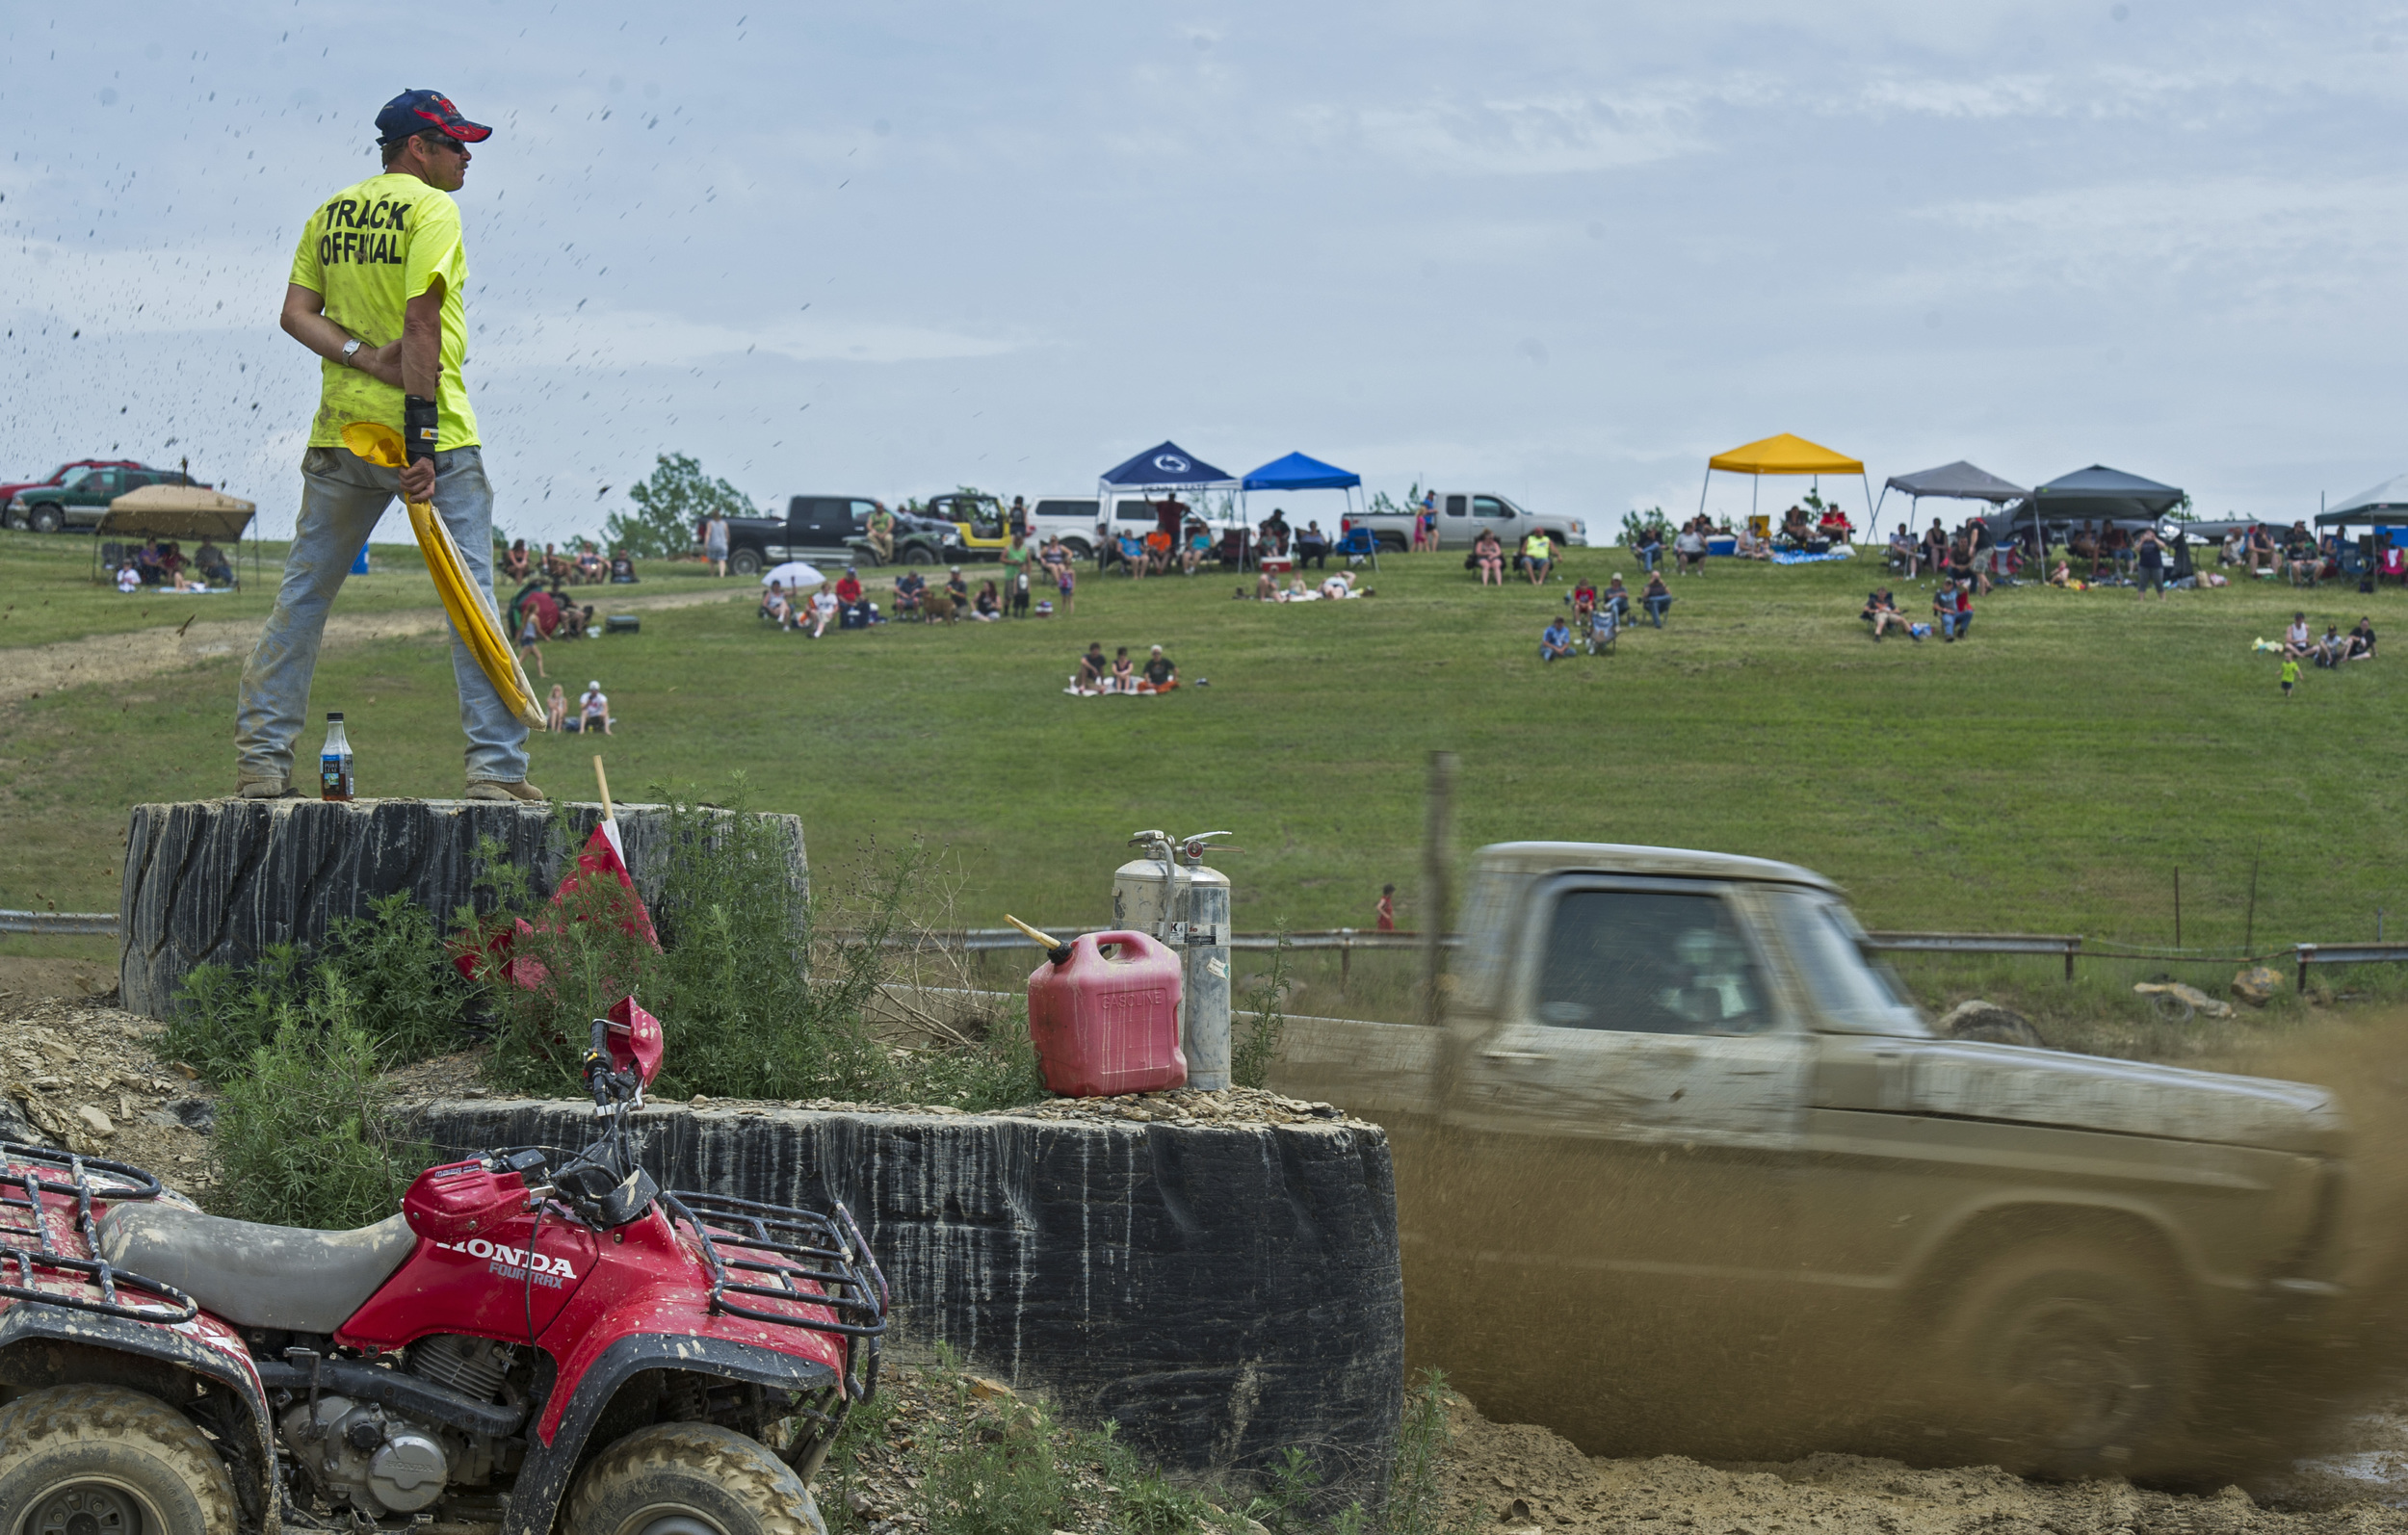 Volunteer track official Patrick Stania watches as Rodney Smith pilots his Ford pickup truck around the Snow Shoe mud track during the Snow Shoe Mud Race on Sunday, May 29, 2016.